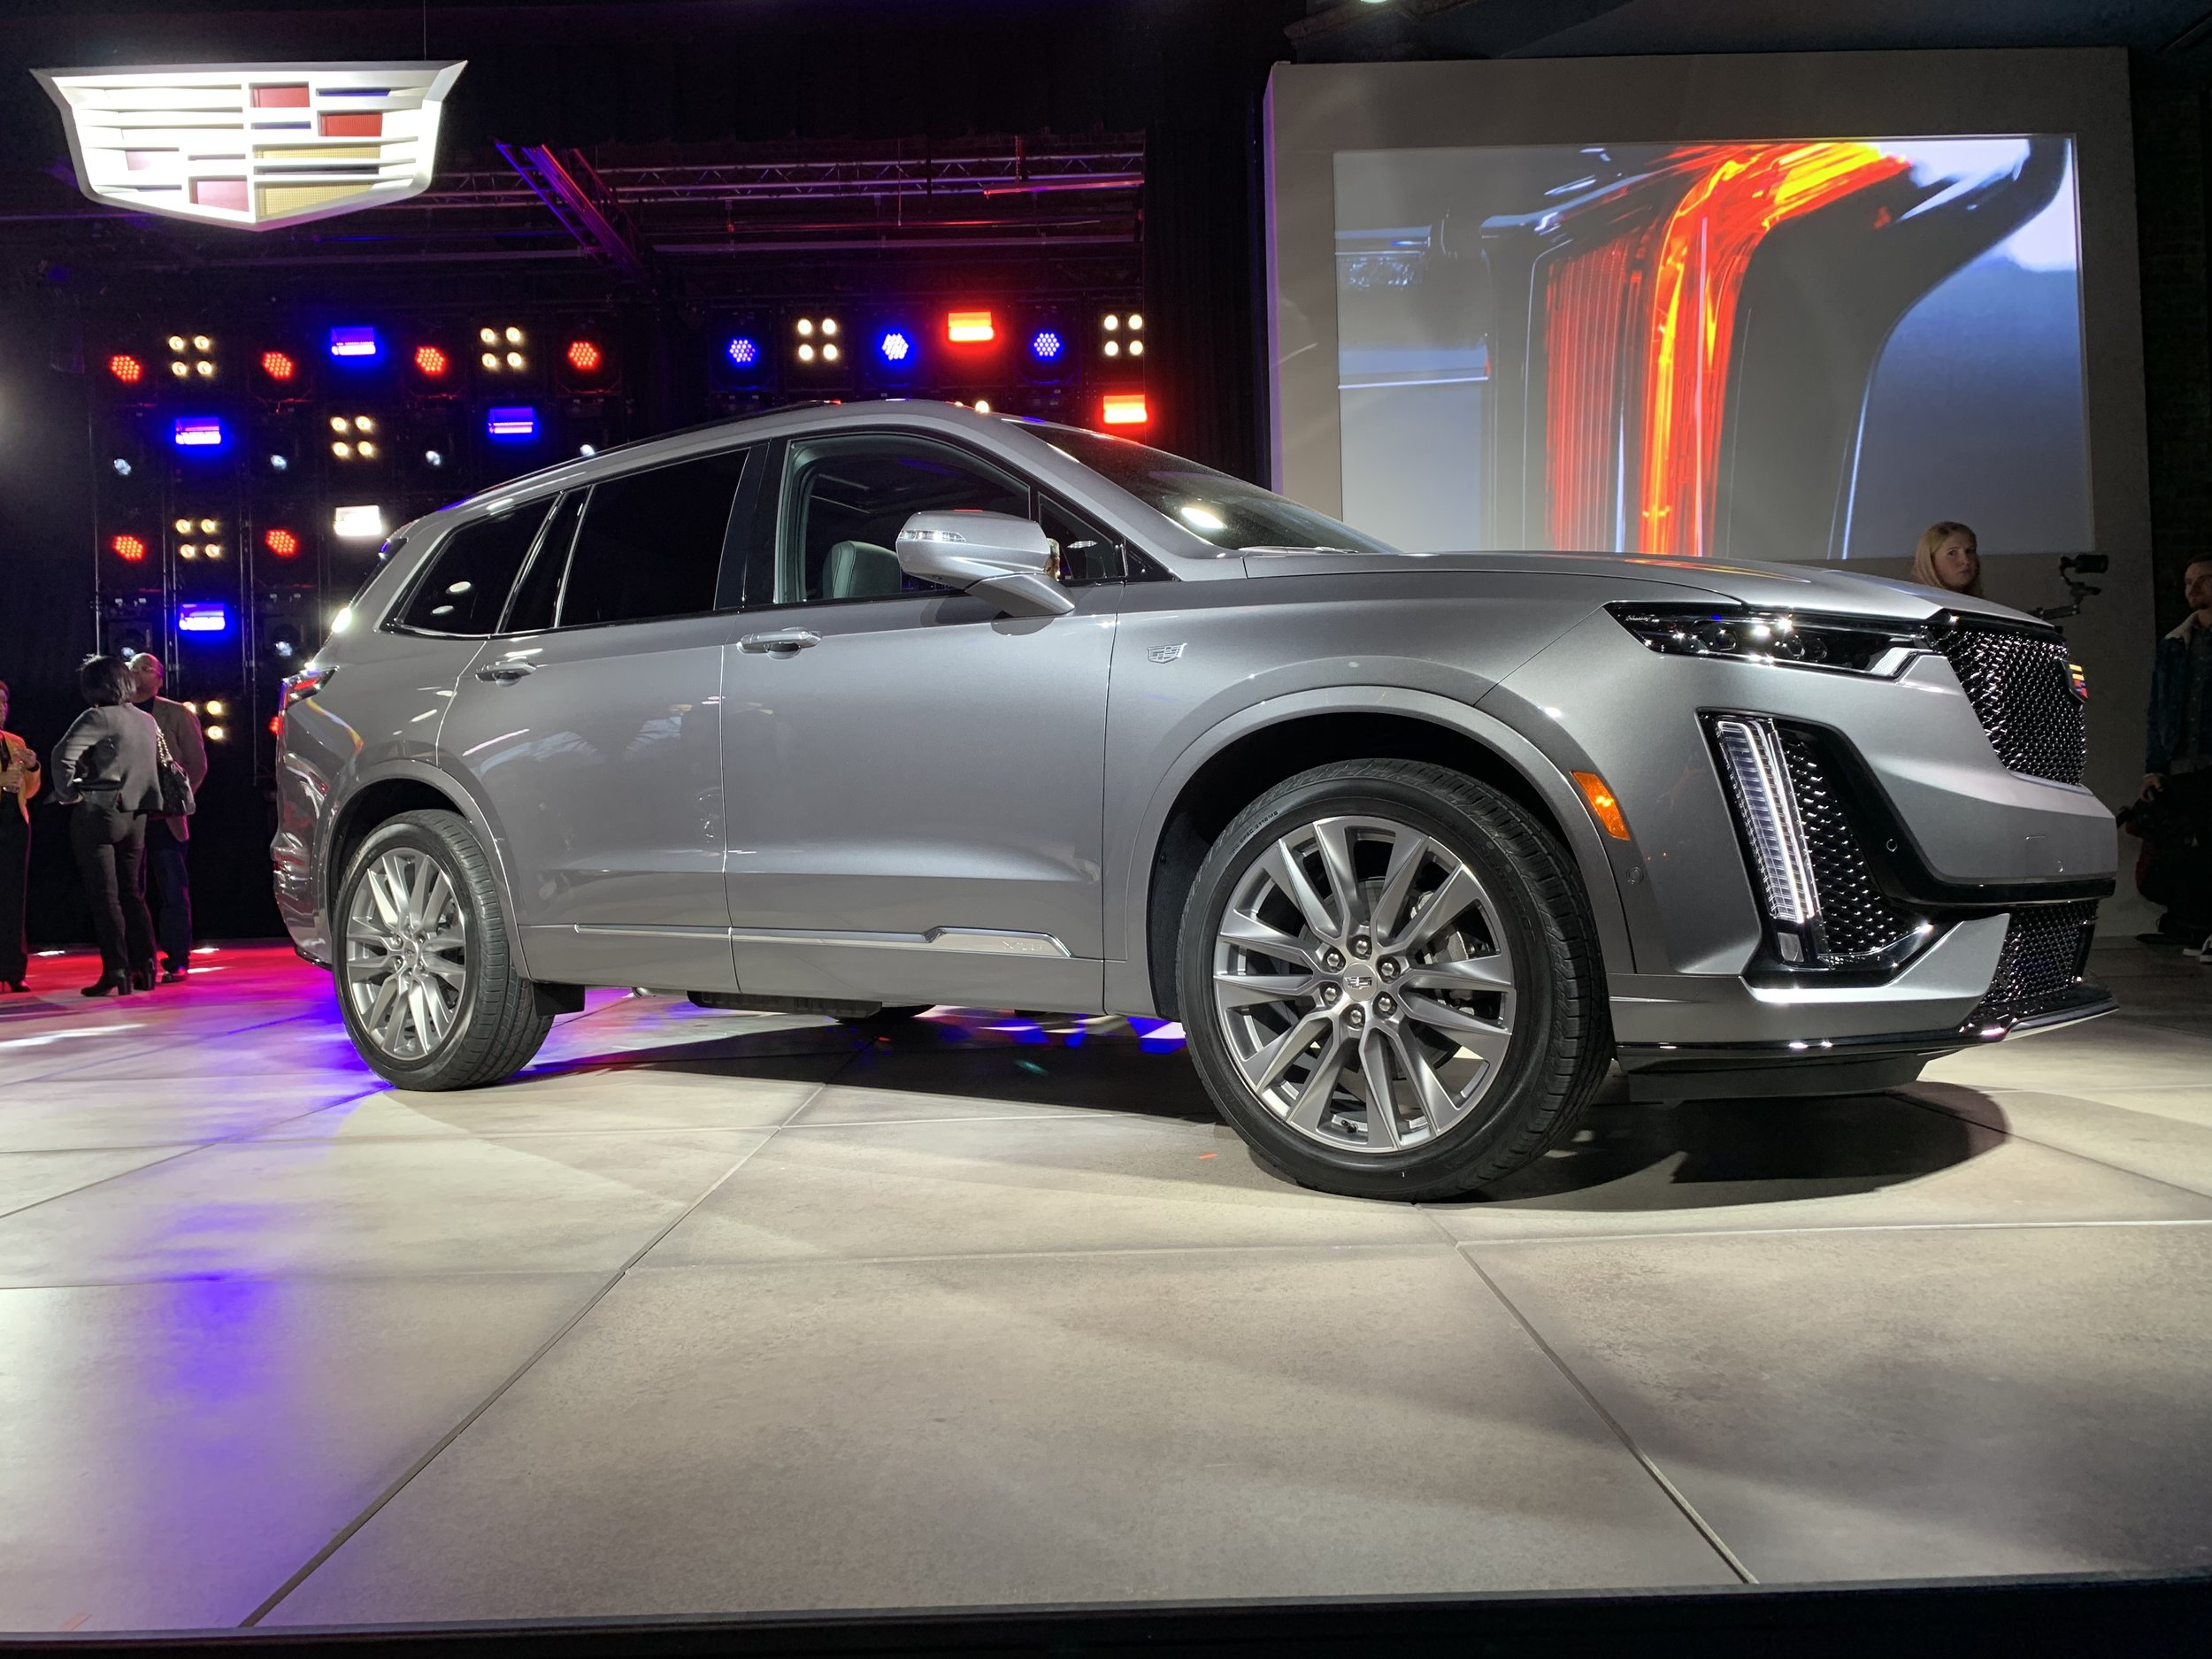 The new Cadillac 2020 XT6 will be available in mid-2019.